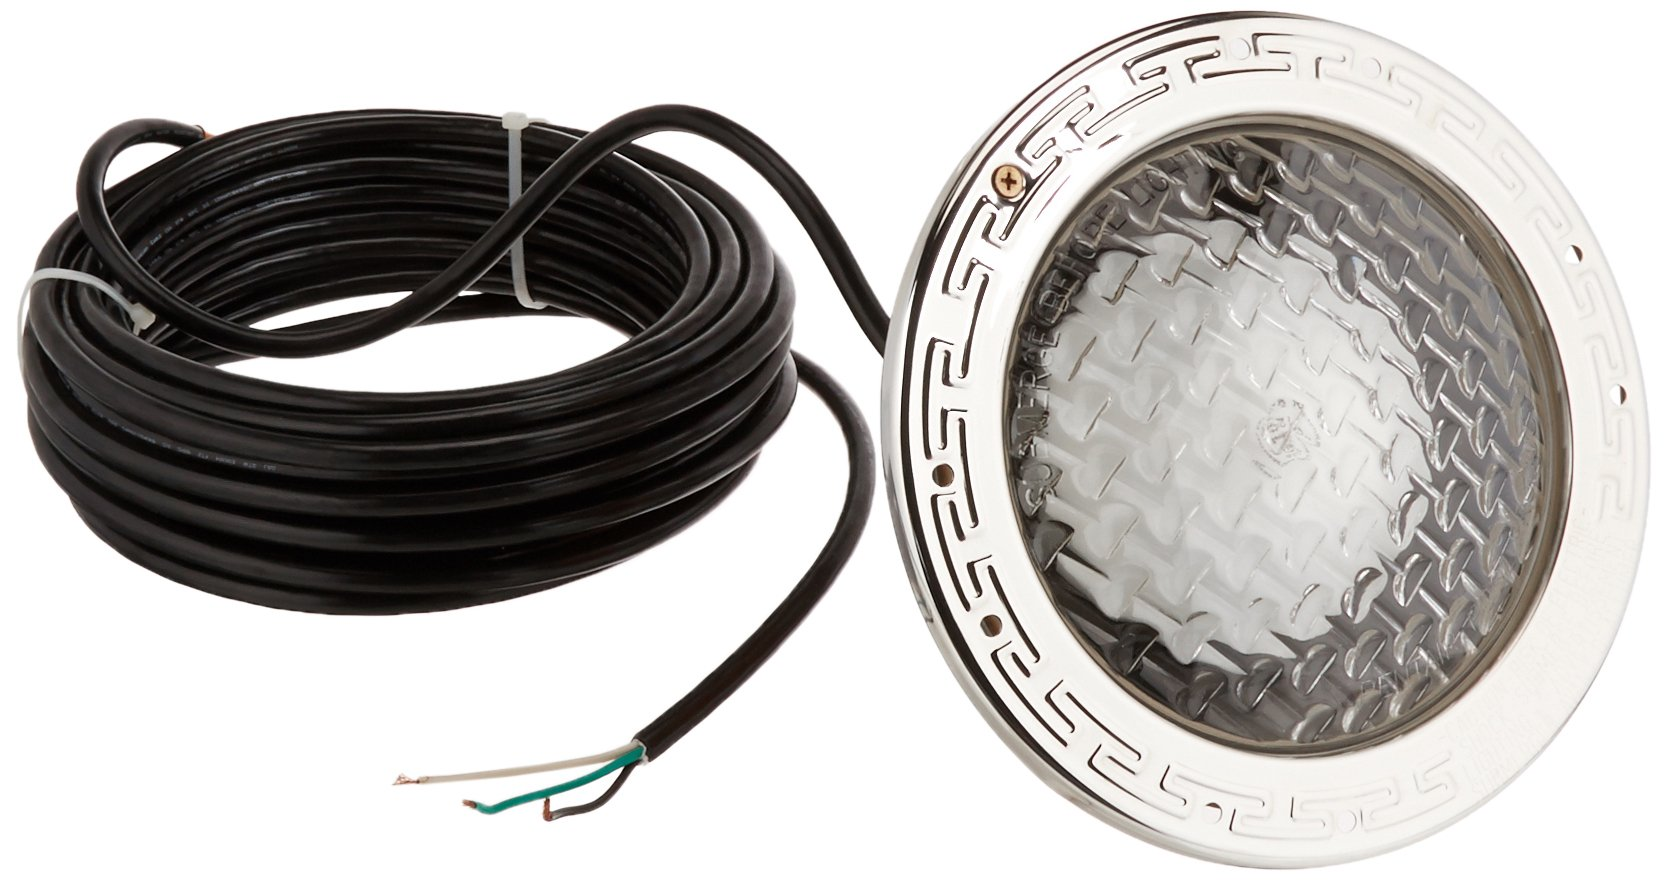 Best Rated In Pool Lighting Products Helpful Customer Reviews Light Wiring Pentair 78428100 Amerlite Underwater Incandescent With Stainless Steel Face Ring 120 Volt